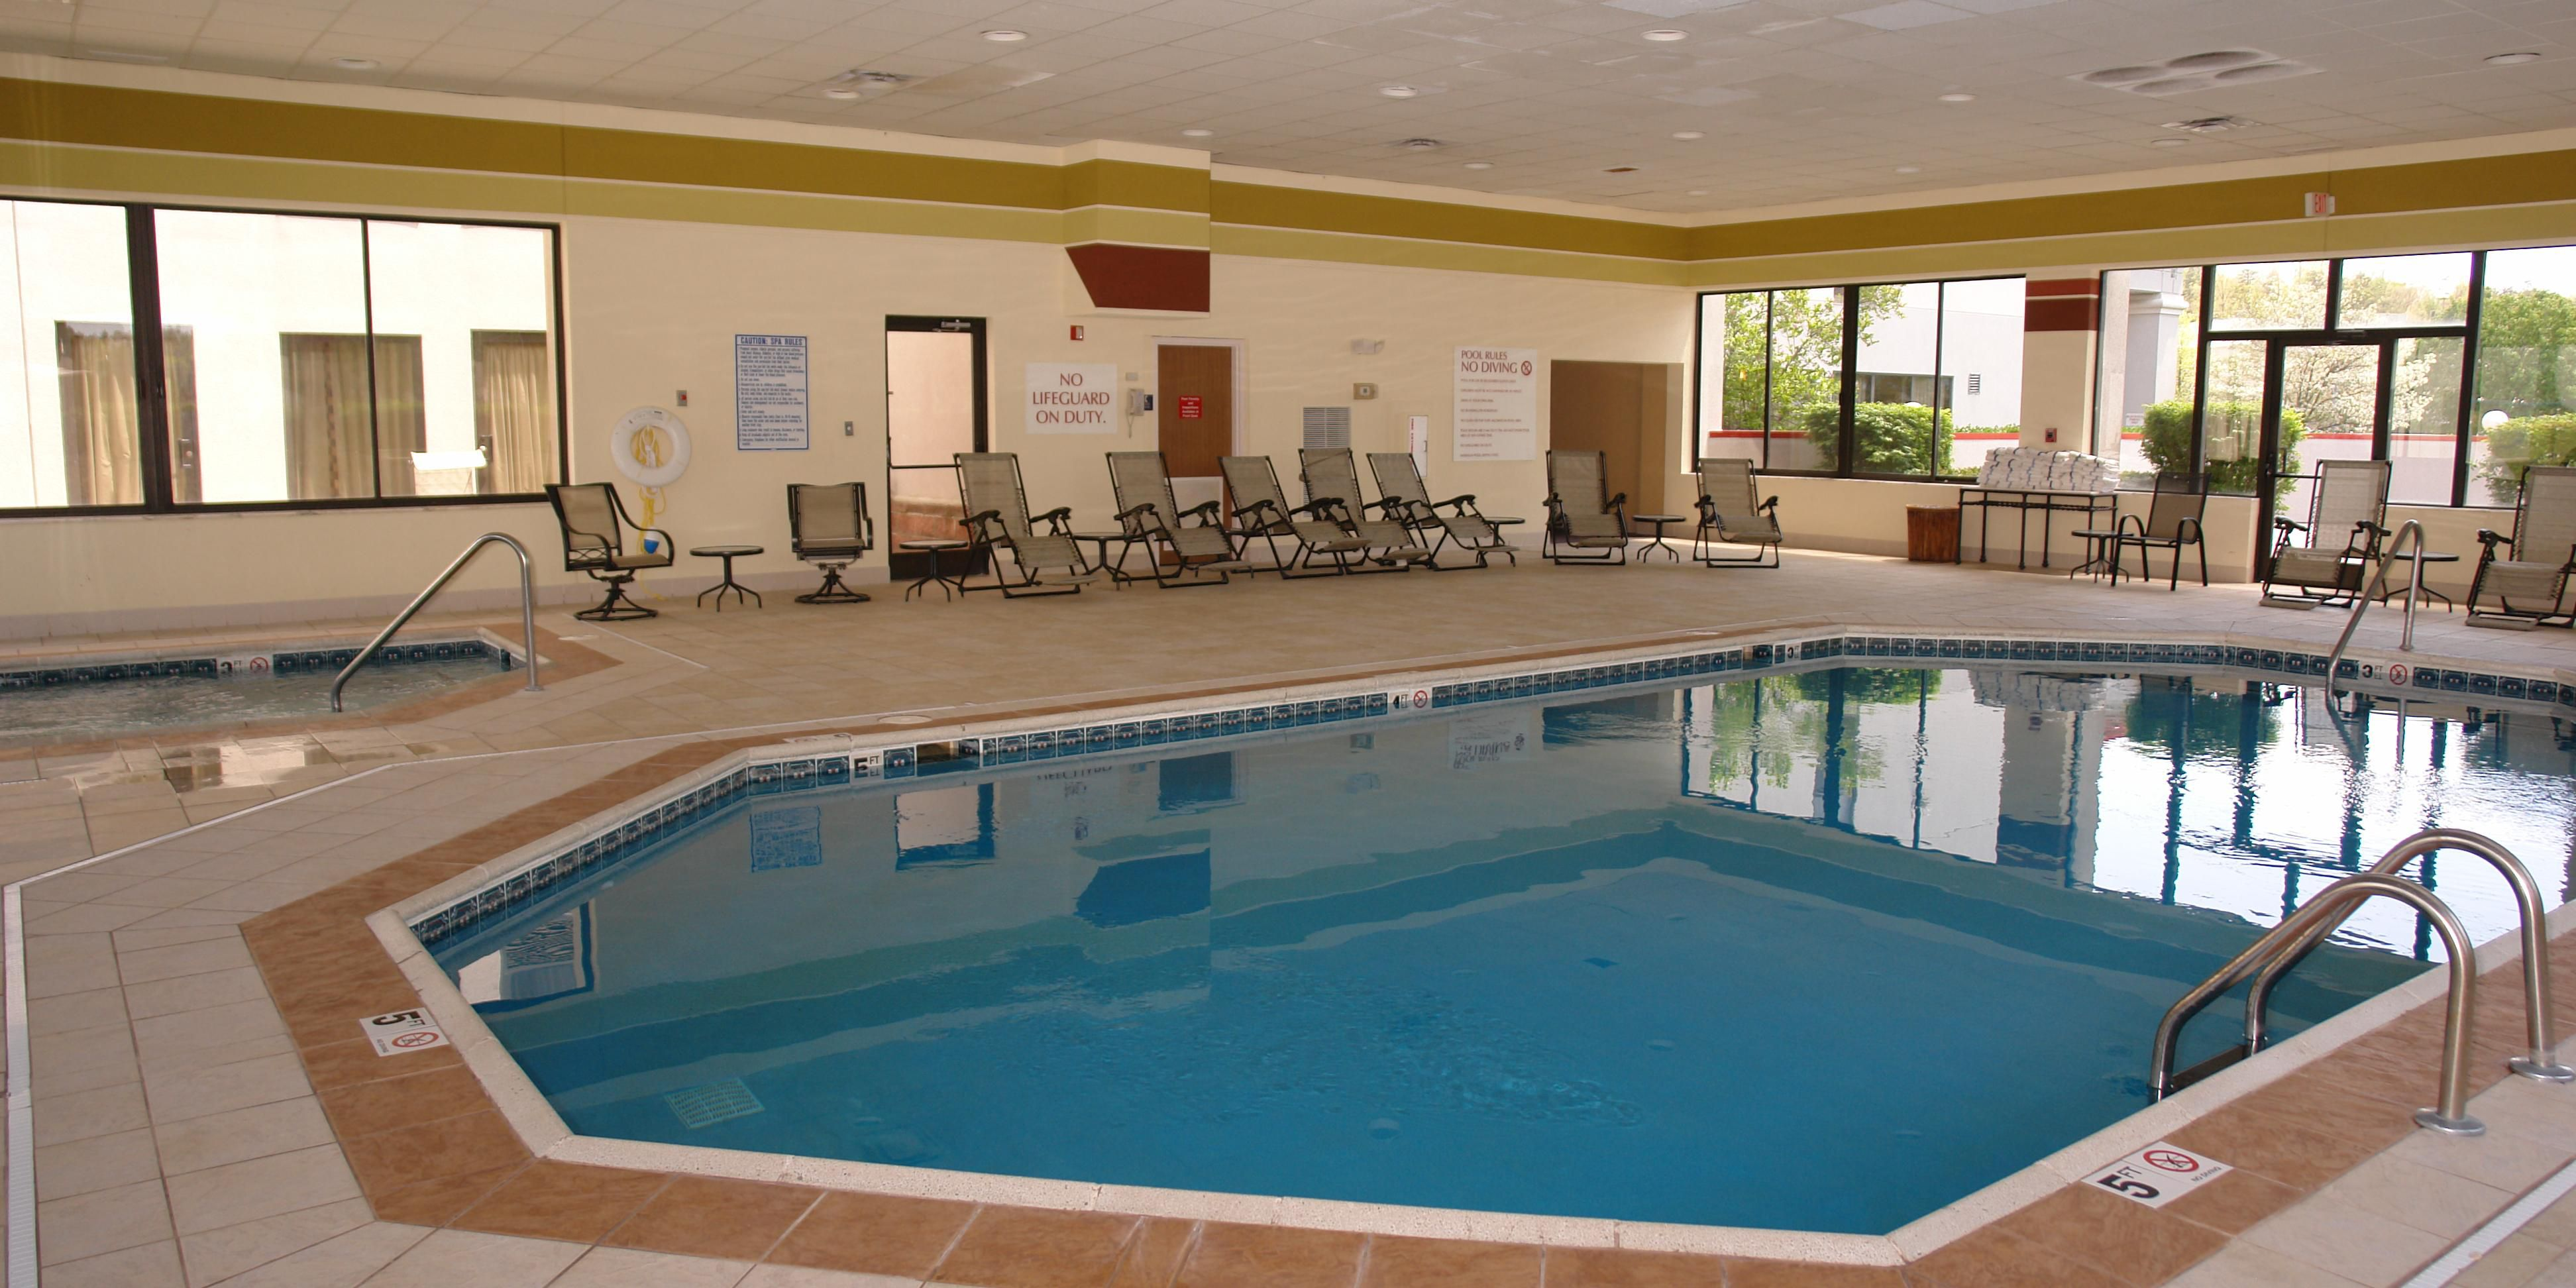 when and the resorts all pools have mountains stay pool while also deckfinal you forge smoky indoor for hotels to common best with way fun in are including swimming why day blog gatlinburg pigeon a many amenities cabins